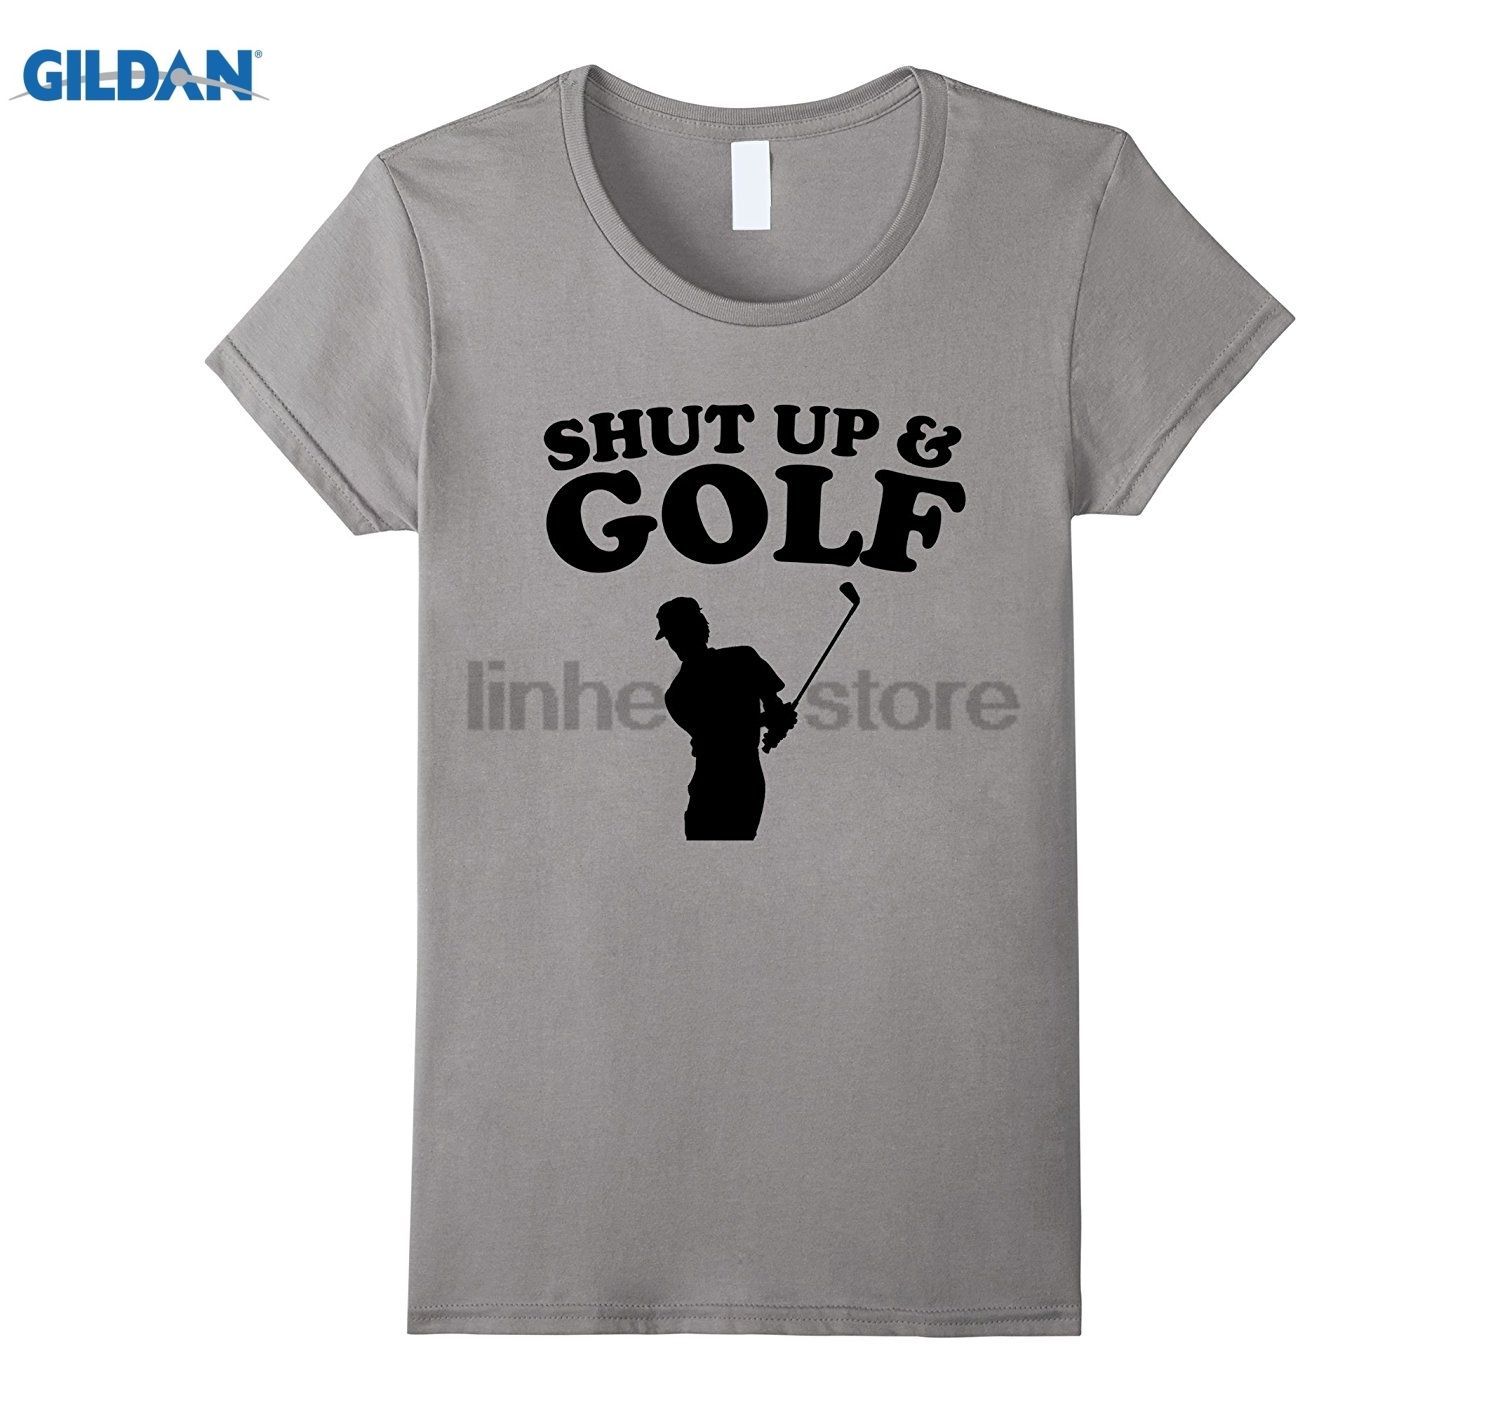 GILDAN Shut Up And Funny Golfing T-Shirt sunglasses women T-shirt dress T-shirt